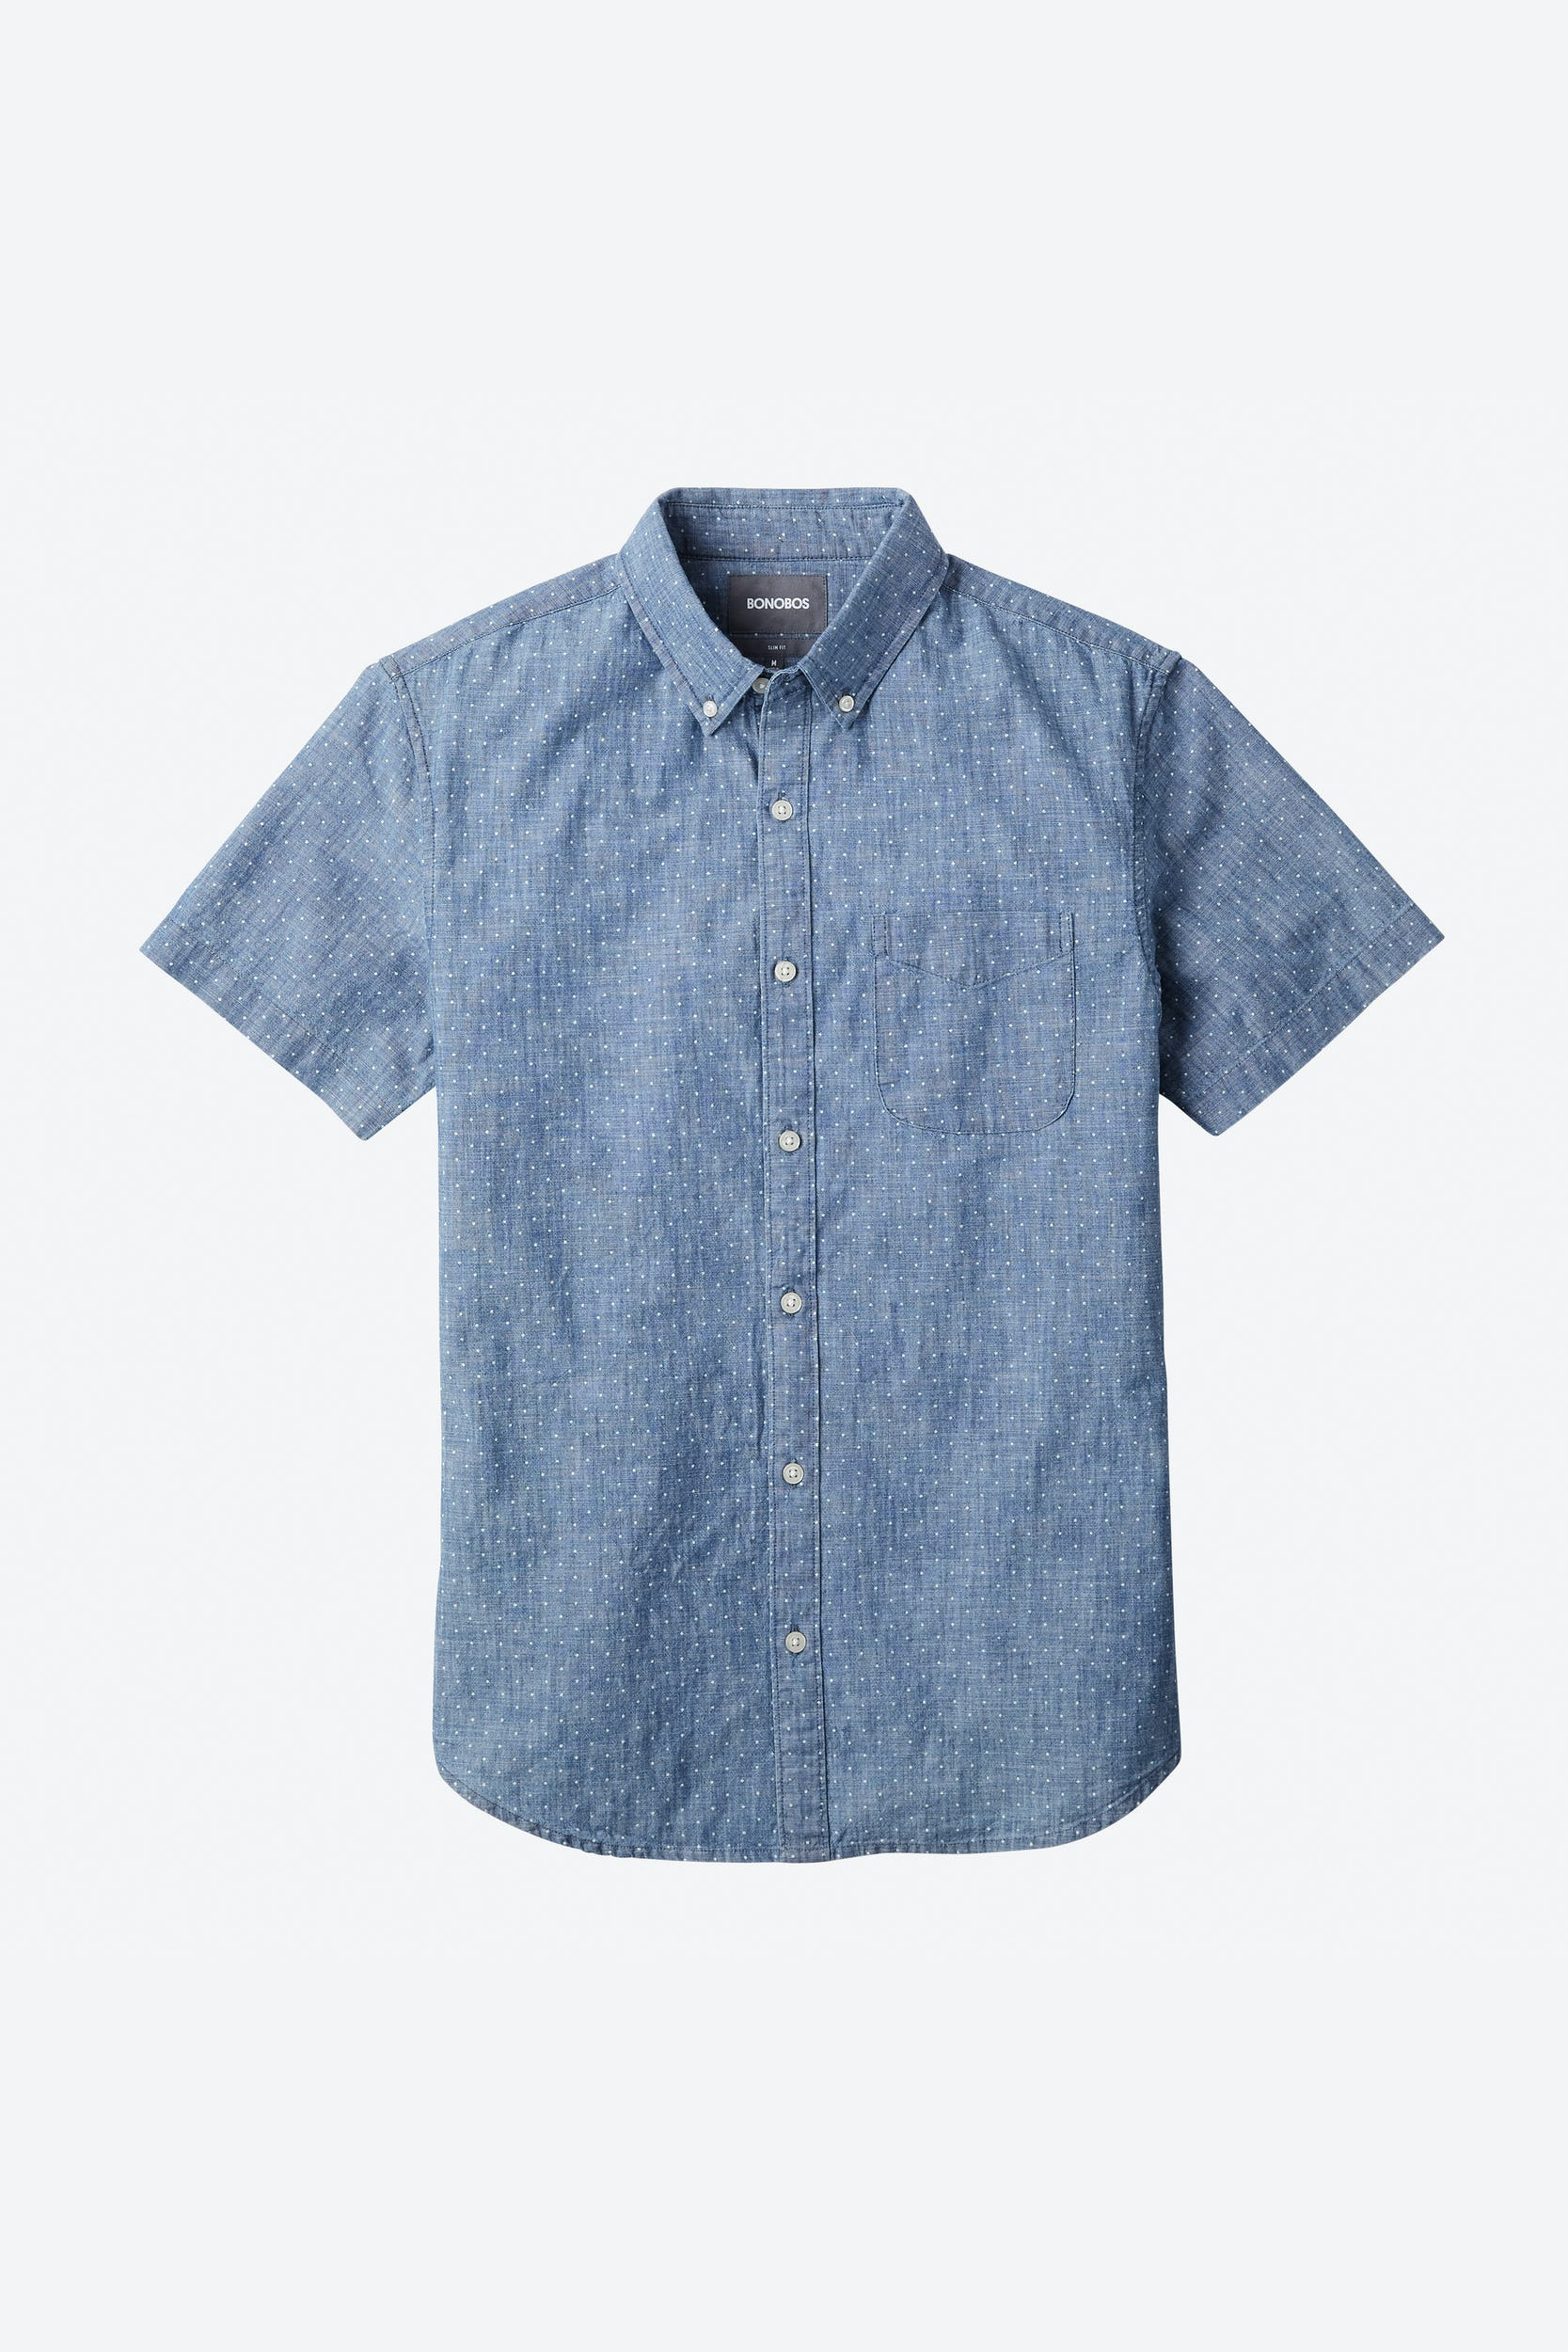 Bonobos Short Sleeve Shirts